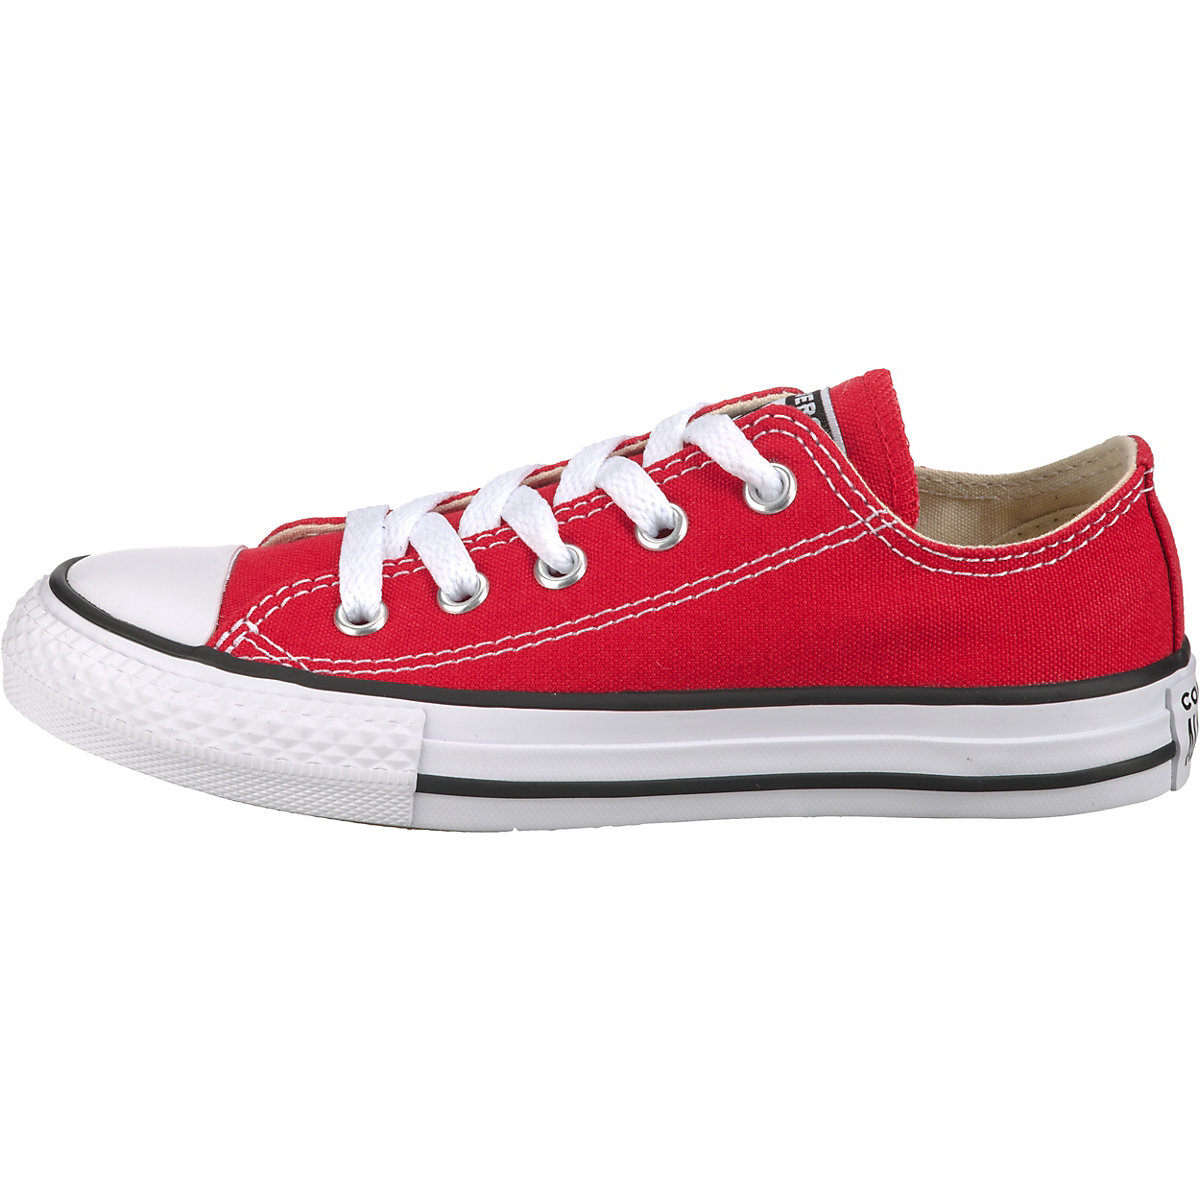 Converse, Kinder Sneakers Low Allstar Ox, Rot